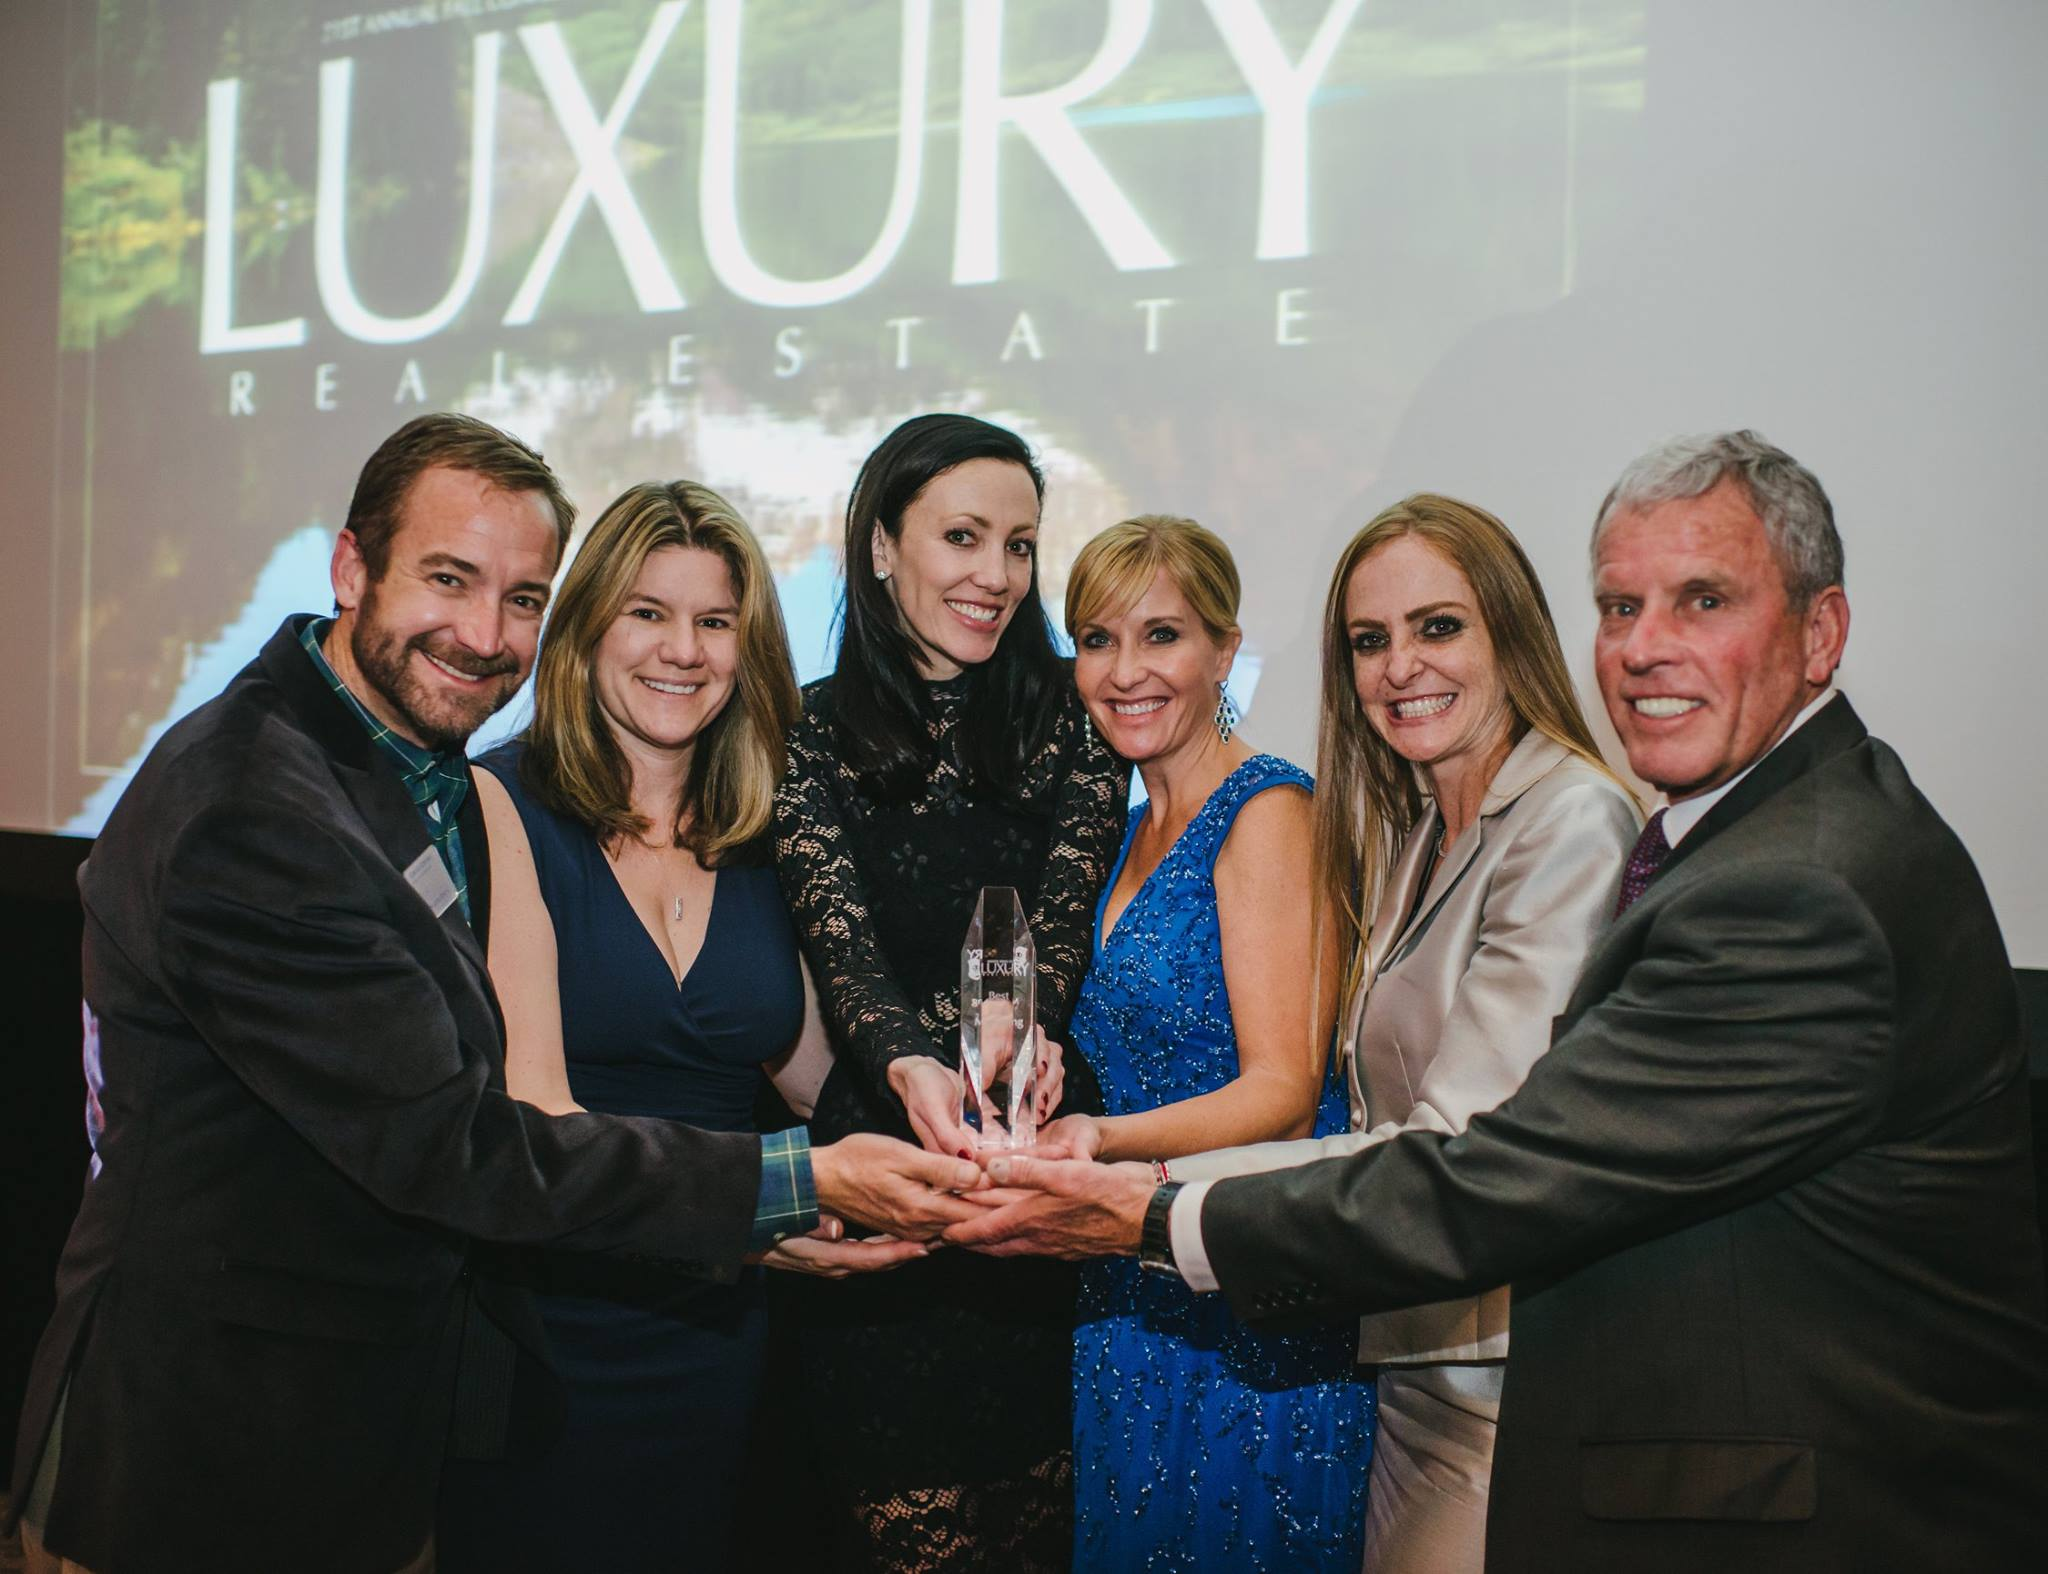 LIV Sotheby's International Realty team accepts 'Best Print Marketing Award' at 21st Annual Luxury Real Estate Fall Conference in Aspen, CO.